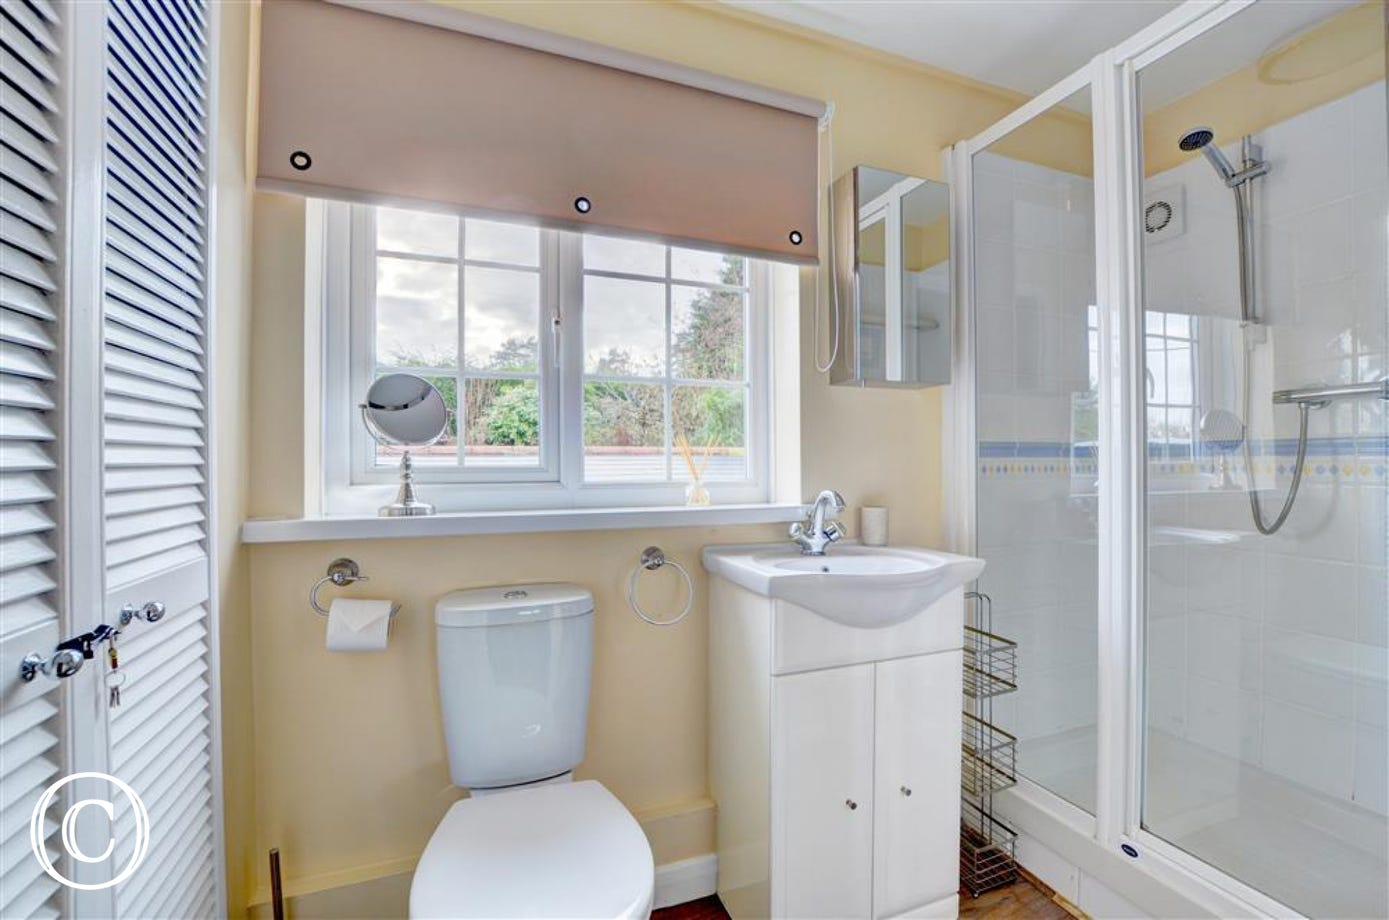 The ensuite with large walk in shower